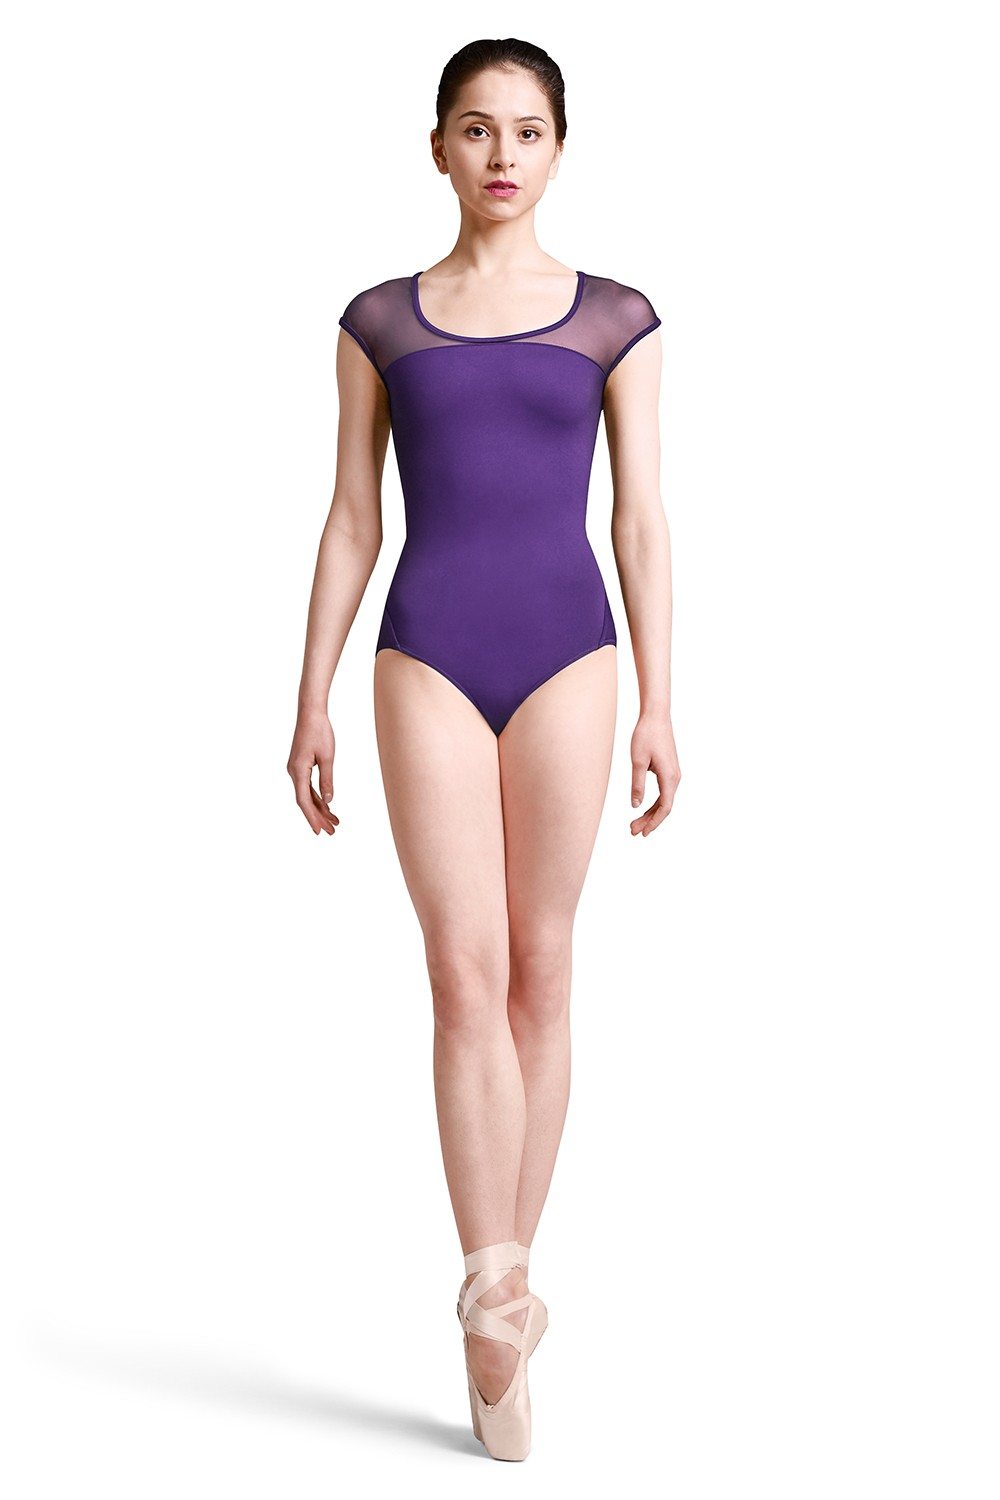 Rouleaux Cap Sleeve Leo Women's Dance Leotards